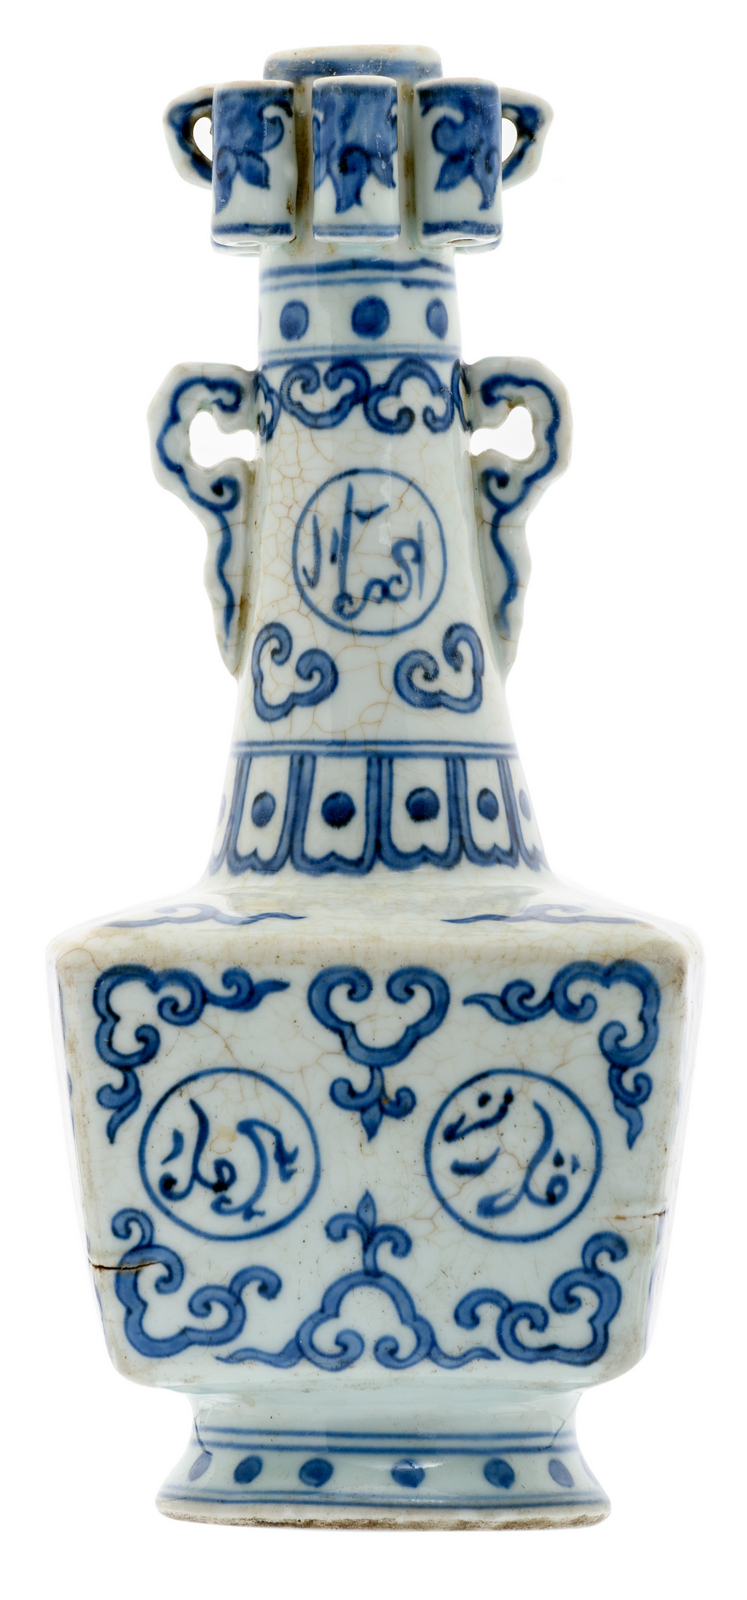 A fine Chinese blue and white floral decorated 'arrow vase' on a quadrangular base, the roundels with Arabic characters, with a Zhengde mark, H 30 cm